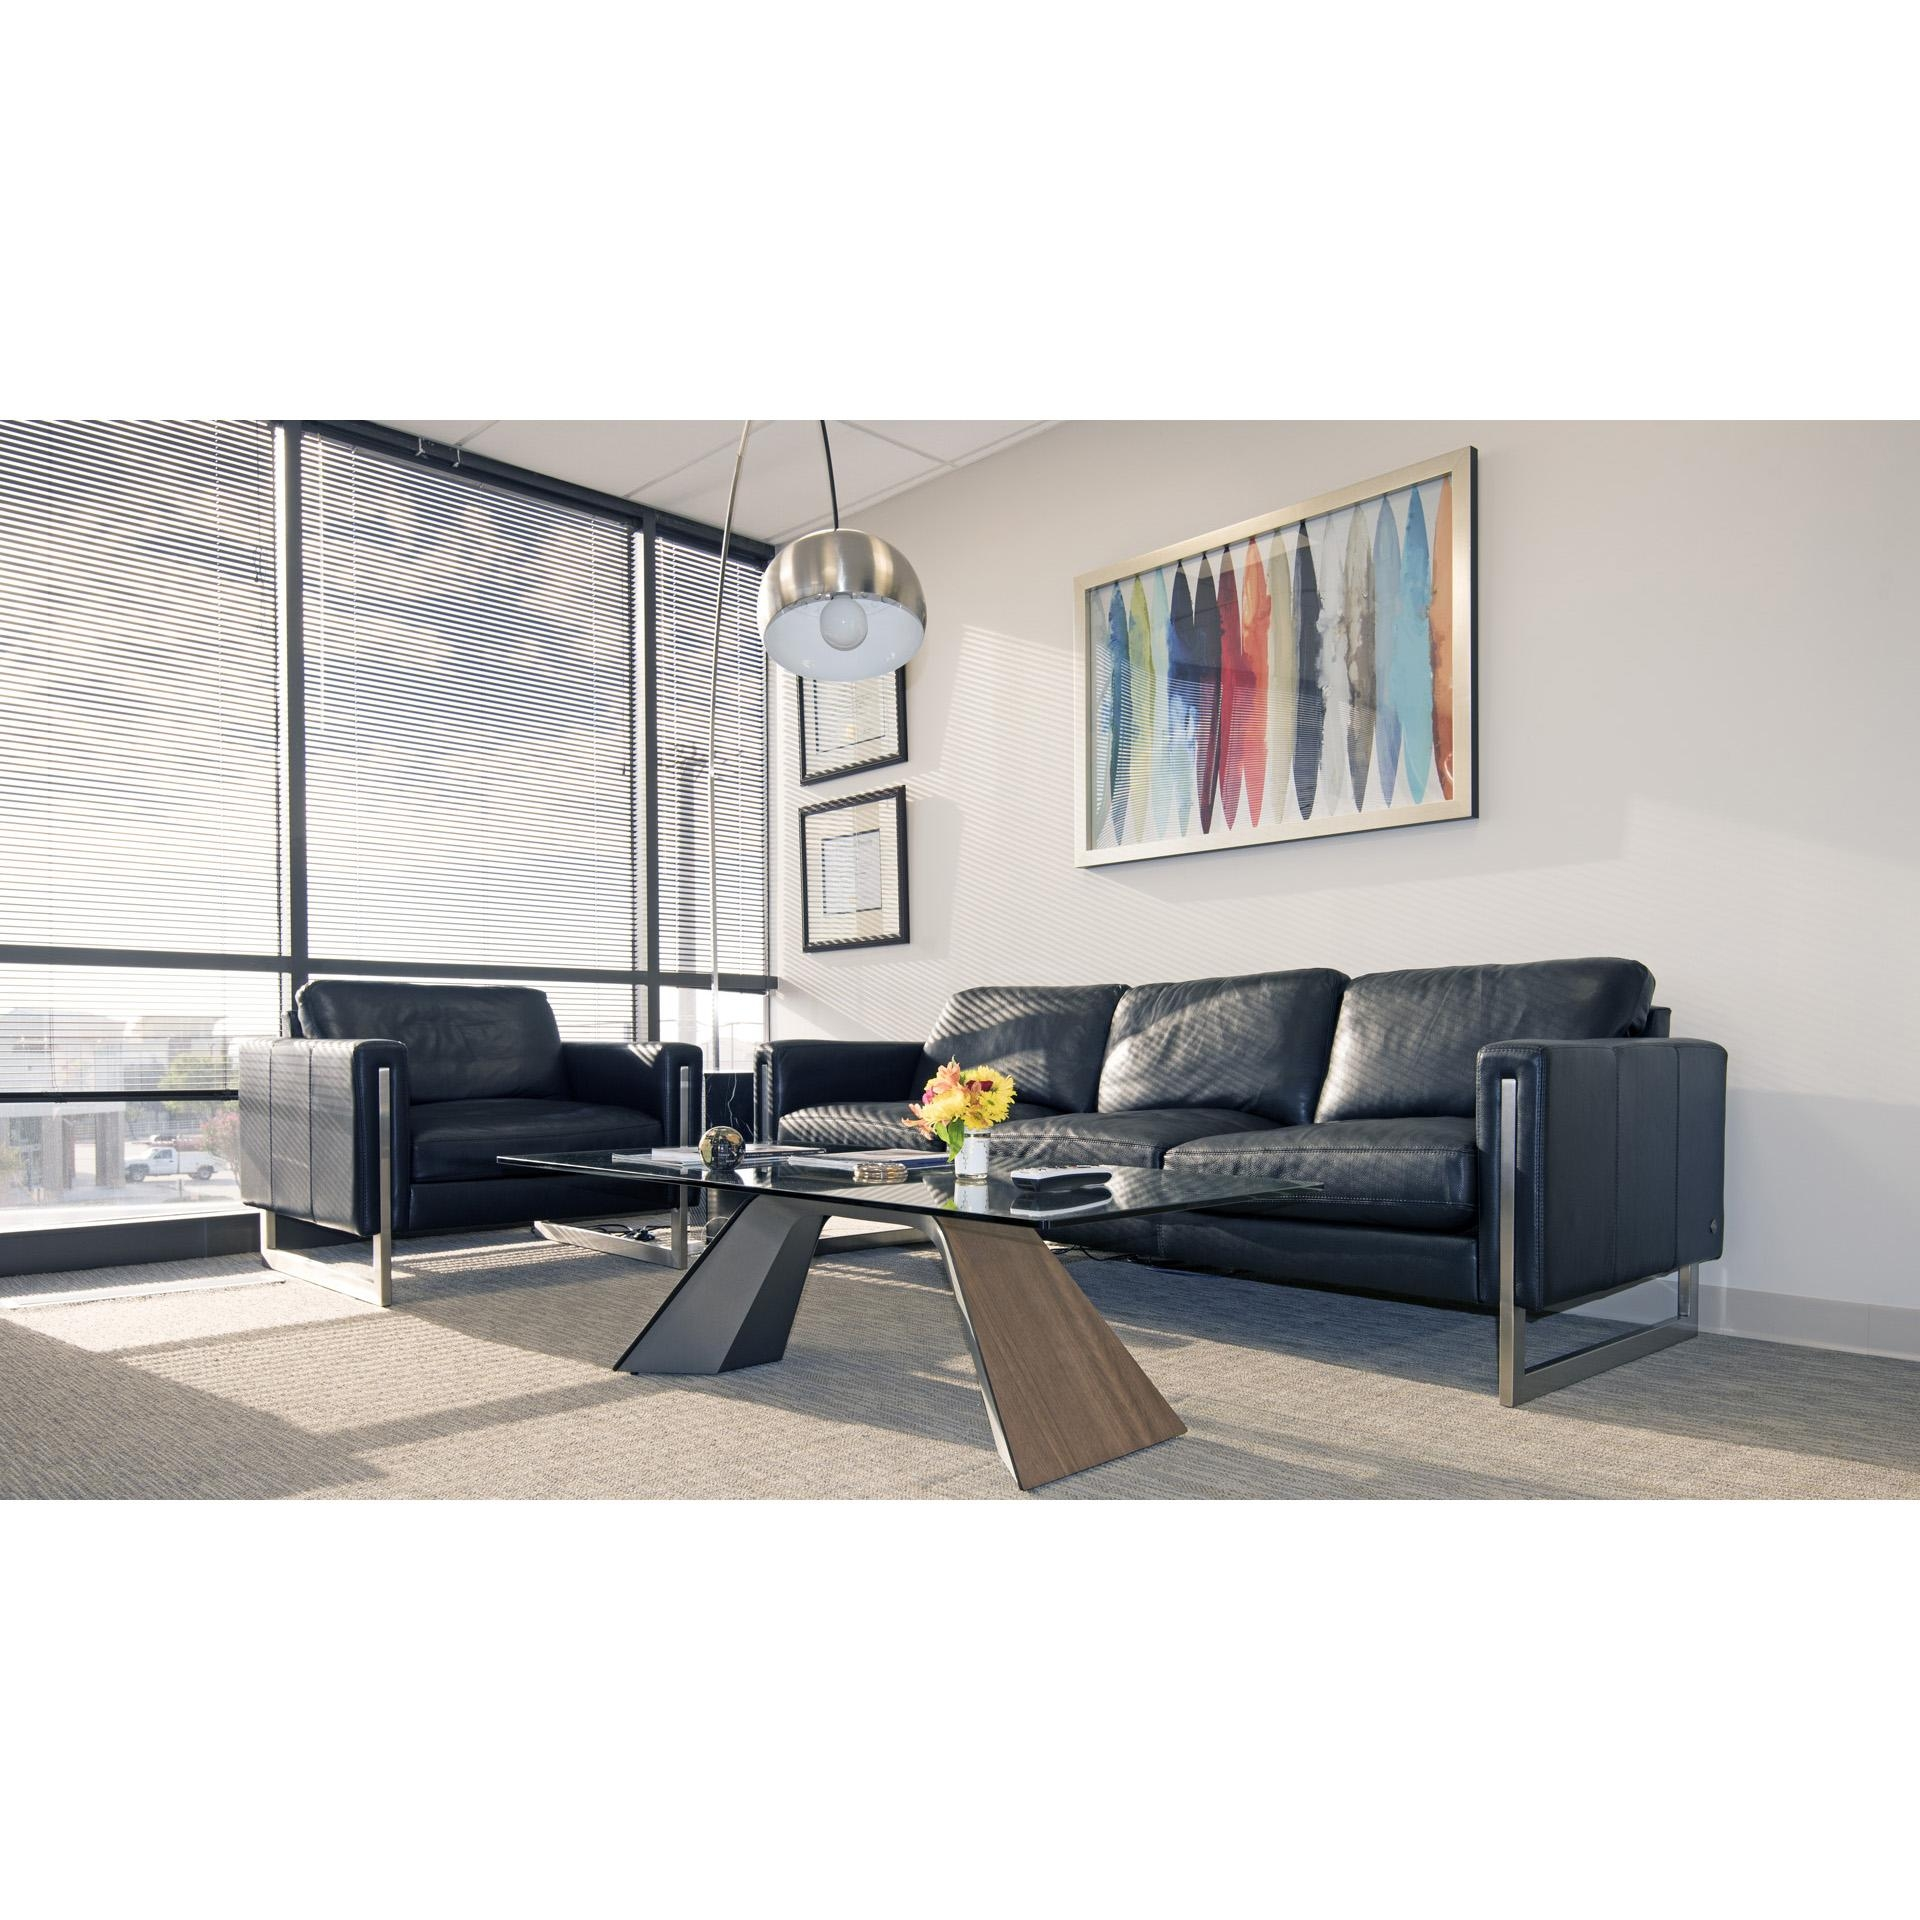 Modern Sofas Savinoamerican Leather Black | Cantoni In Cantoni Sofas (Image 18 of 20)